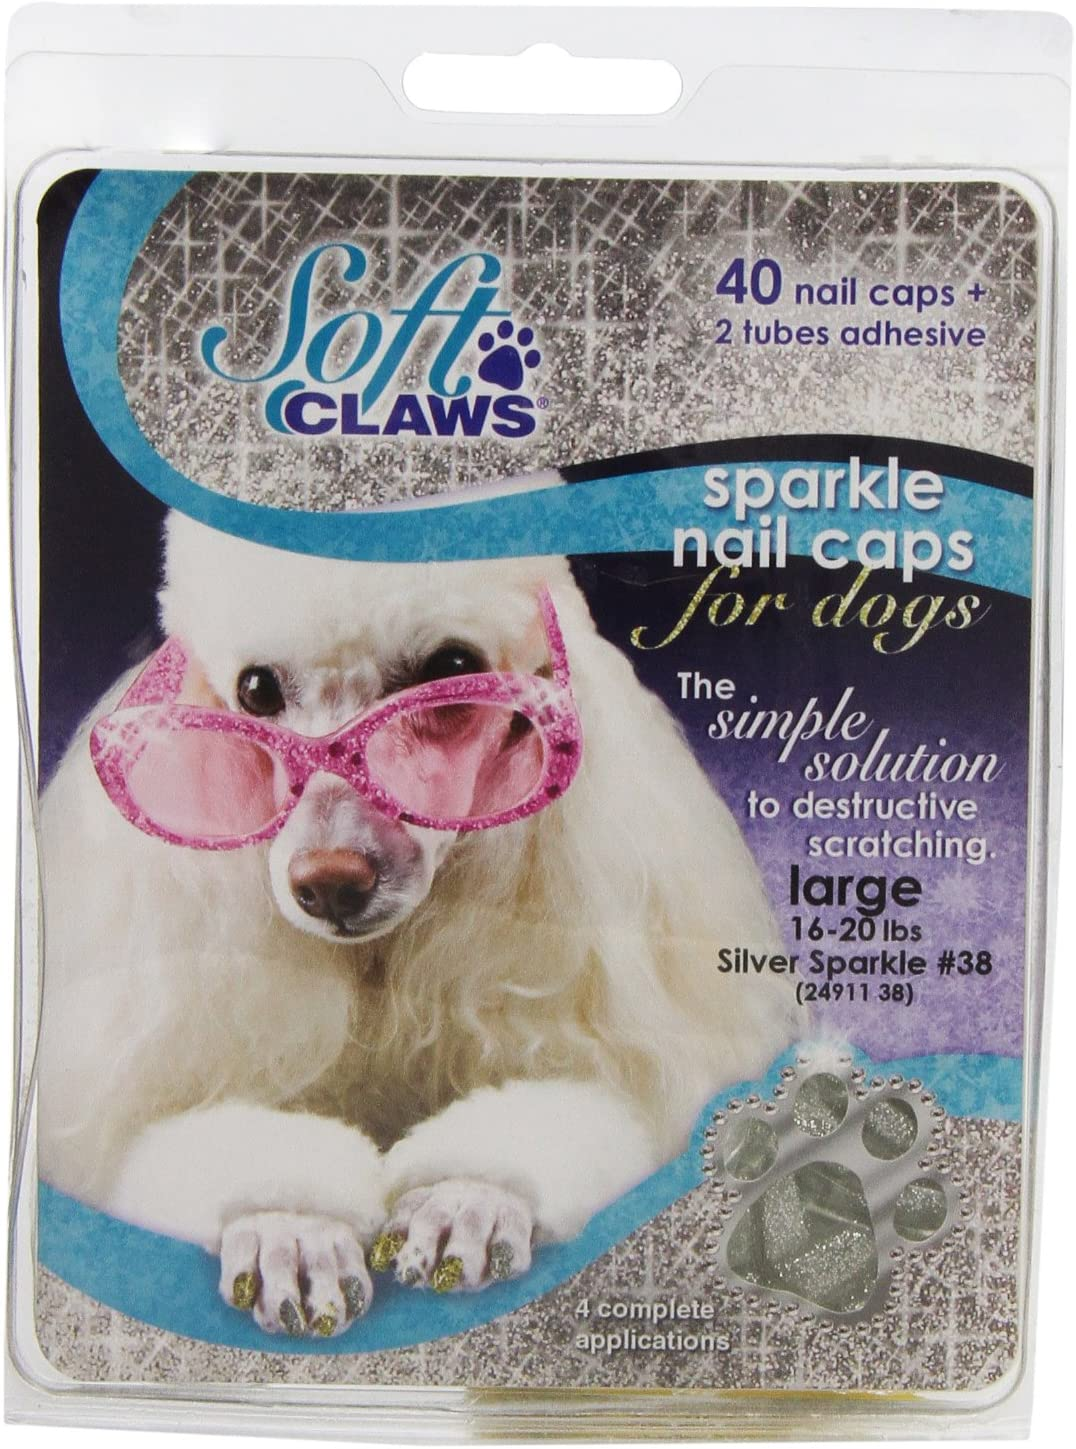 Soft Claws Dog and Cat Many popular Great interest brands Nail Caps Kit Take Home Sparkle Large S